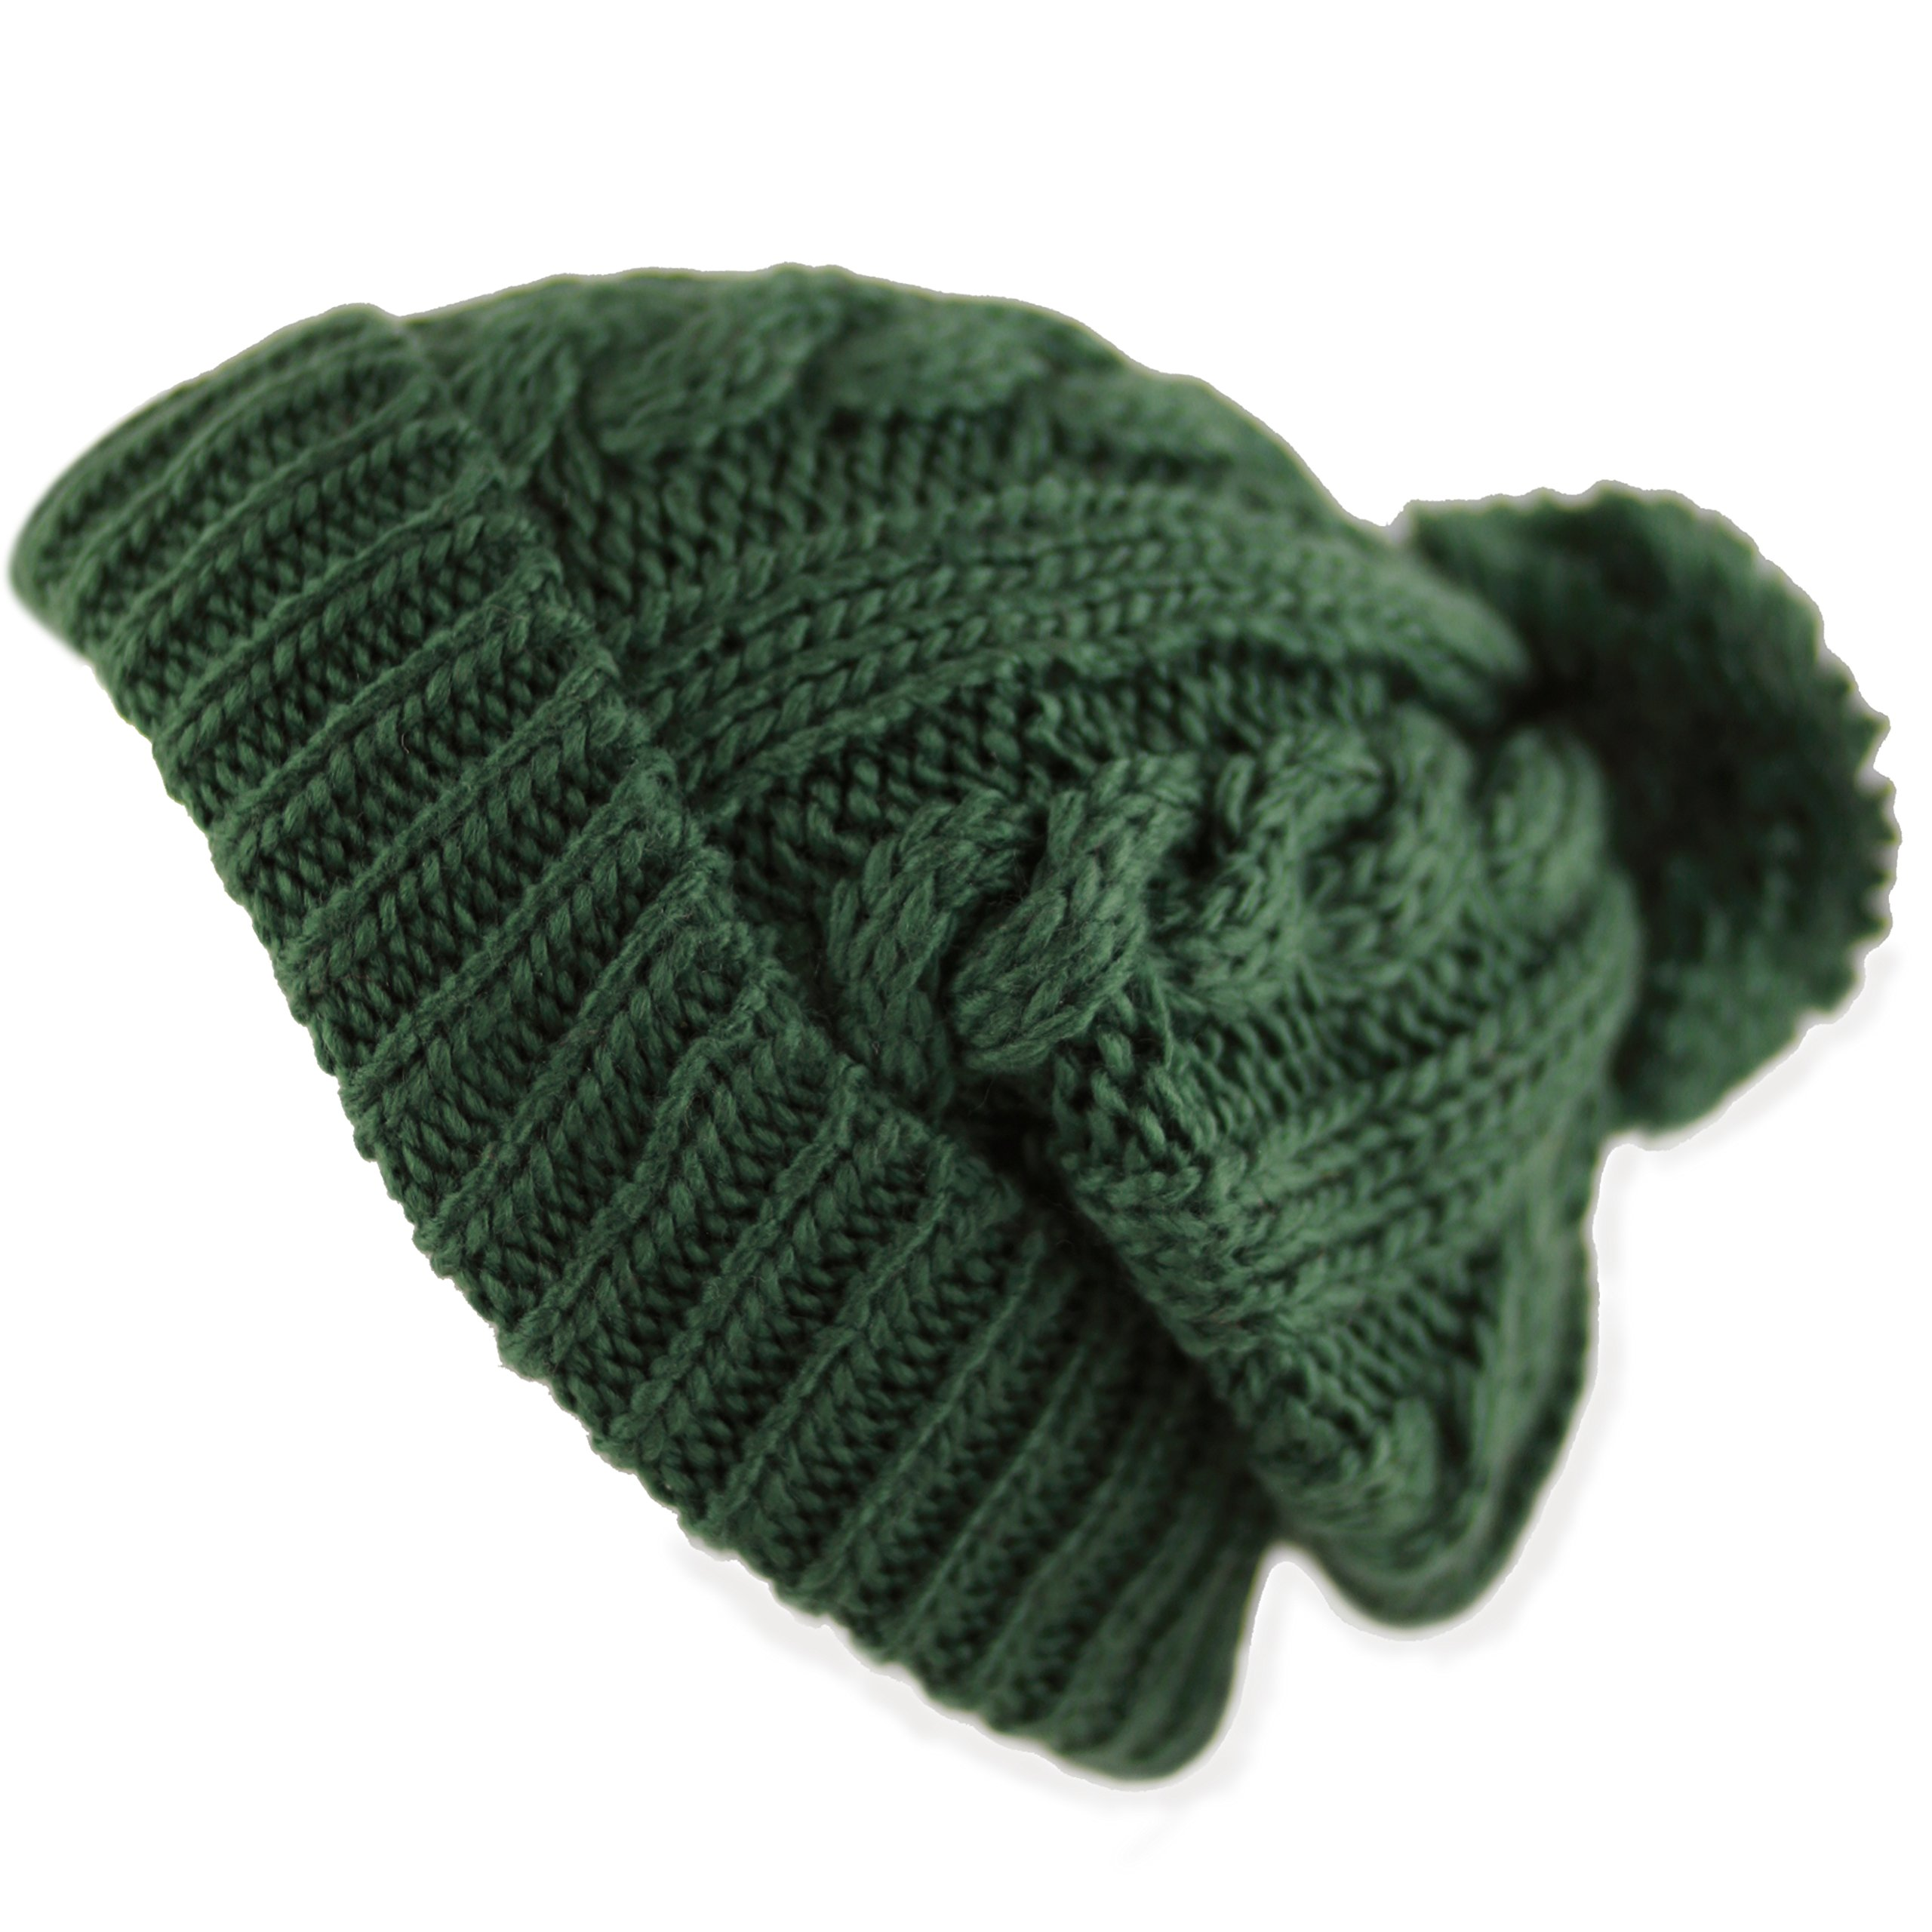 3715171229d THE HAT DEPOT Winter Oversized Cable Knitted Pom Pom Beanie Hat Fleece  Lining Hat product image